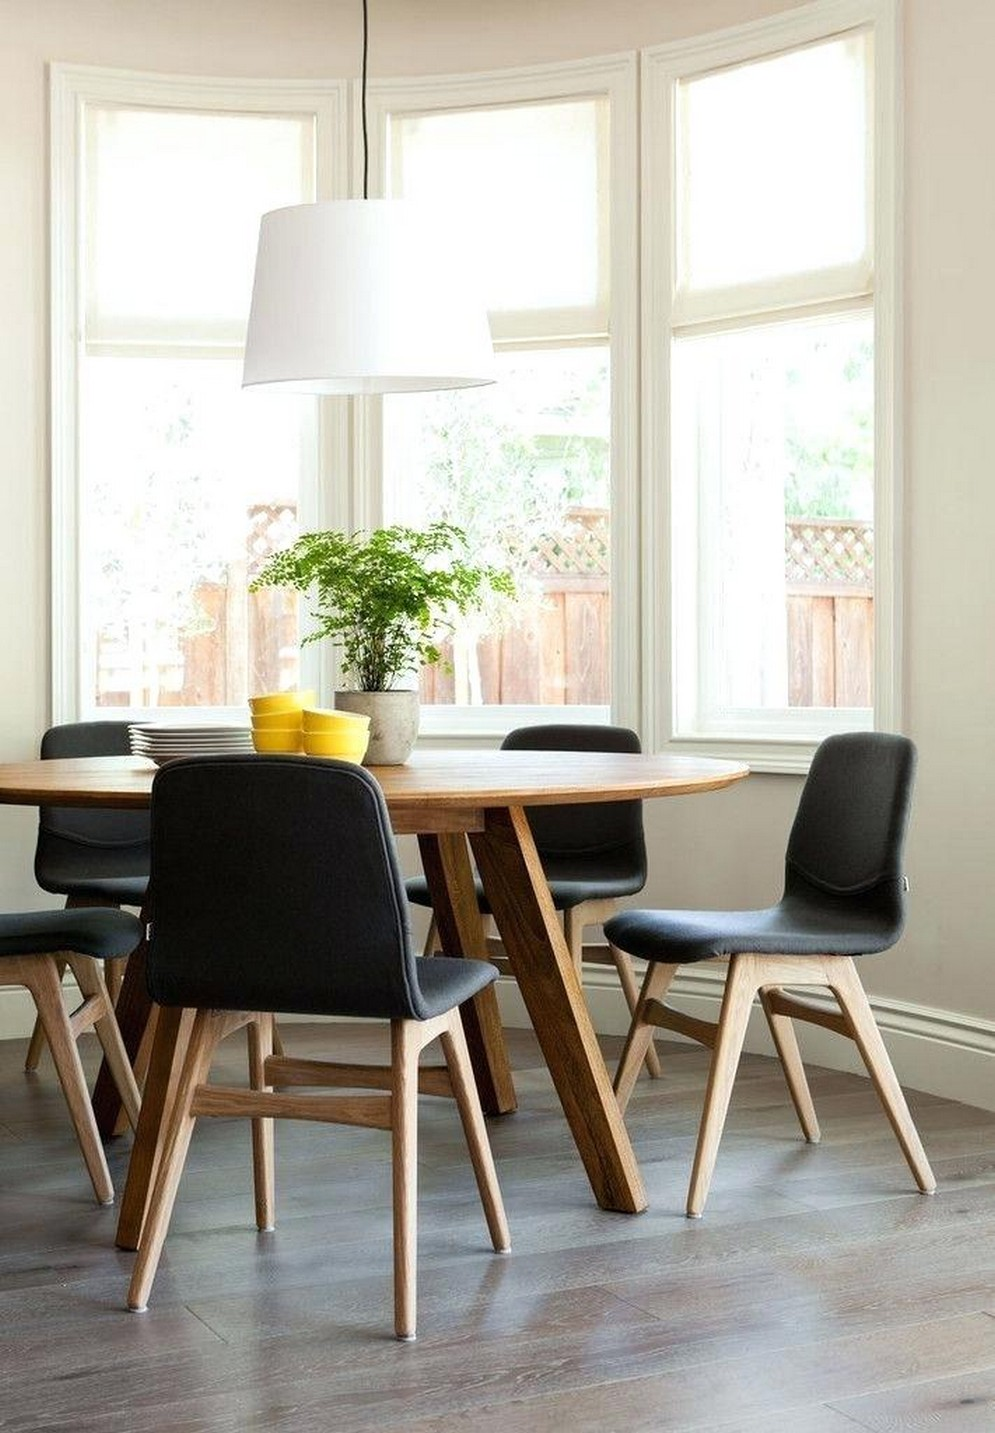 Magnificent Inspiration of Dining Room Renovation Concept